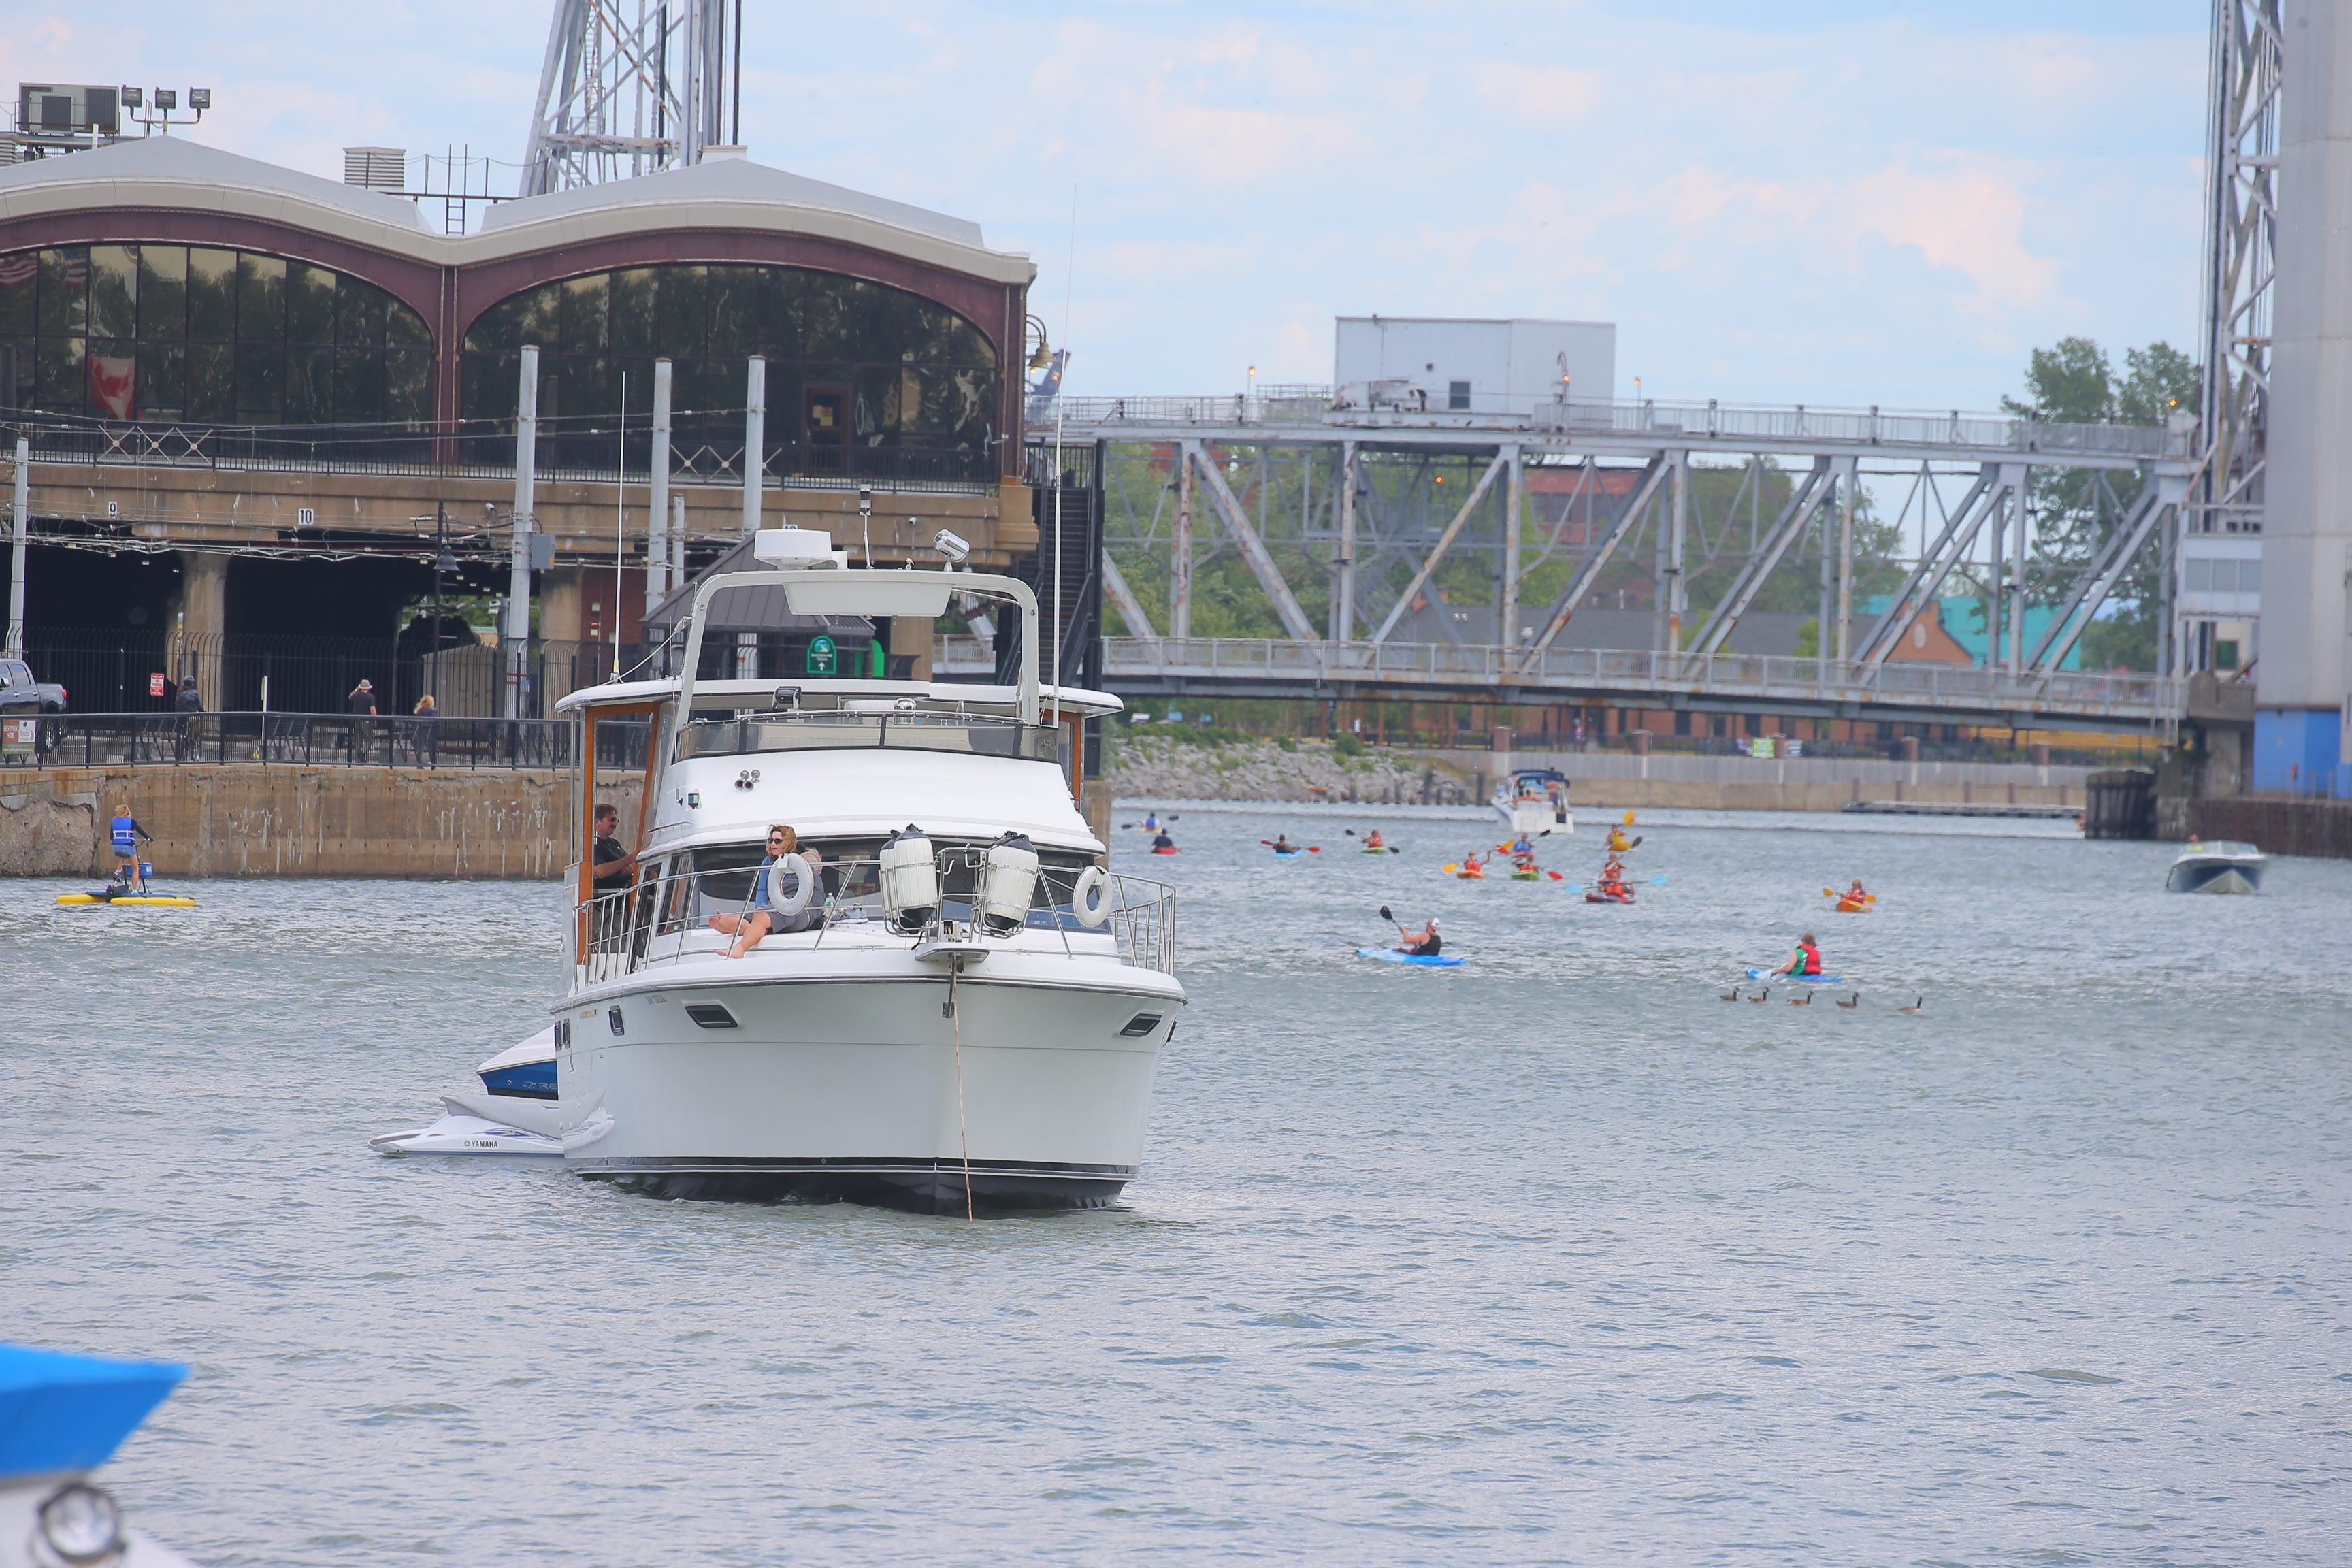 Congested water front with Kayaks, motorboats and pedal floats on the Buffalo River in Buffalo, N.Y.,  Saturday.